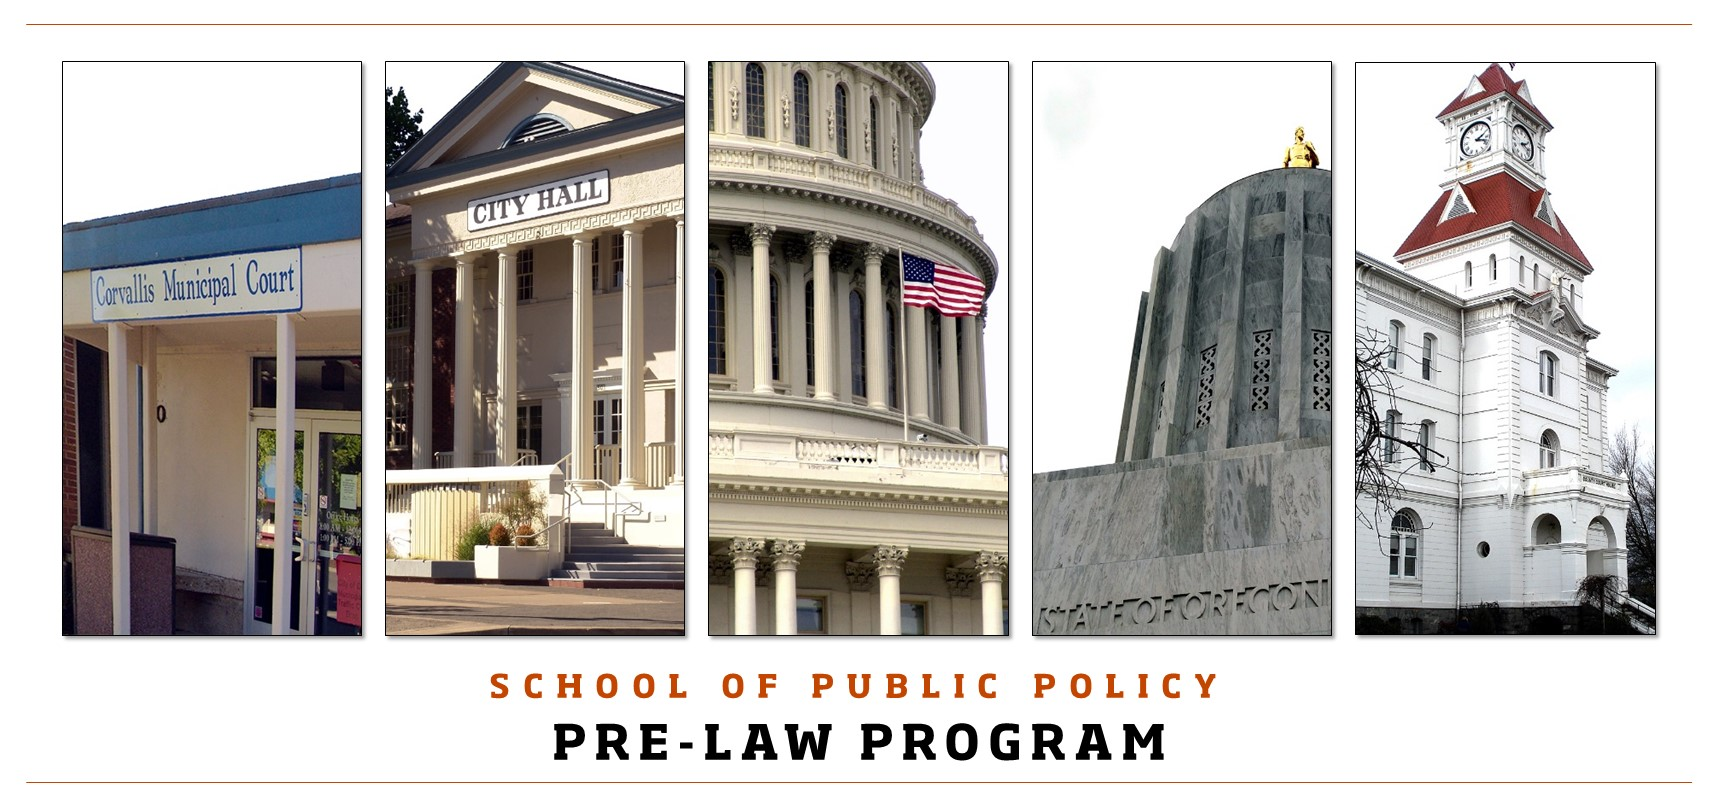 School of Public Policy Pre-Law Program